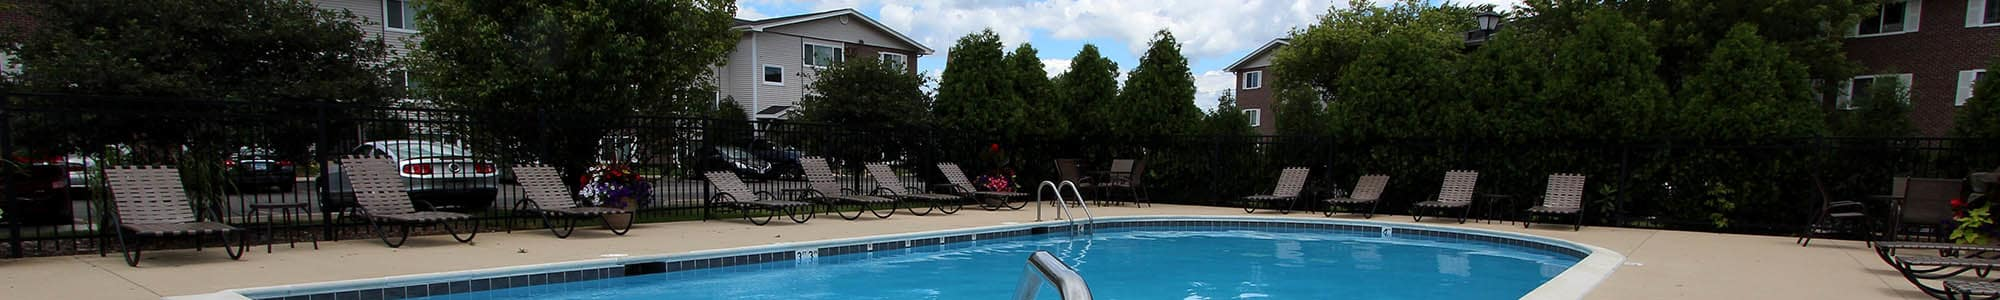 Amenities at West Line Apartments in Hanover Park, Illinois